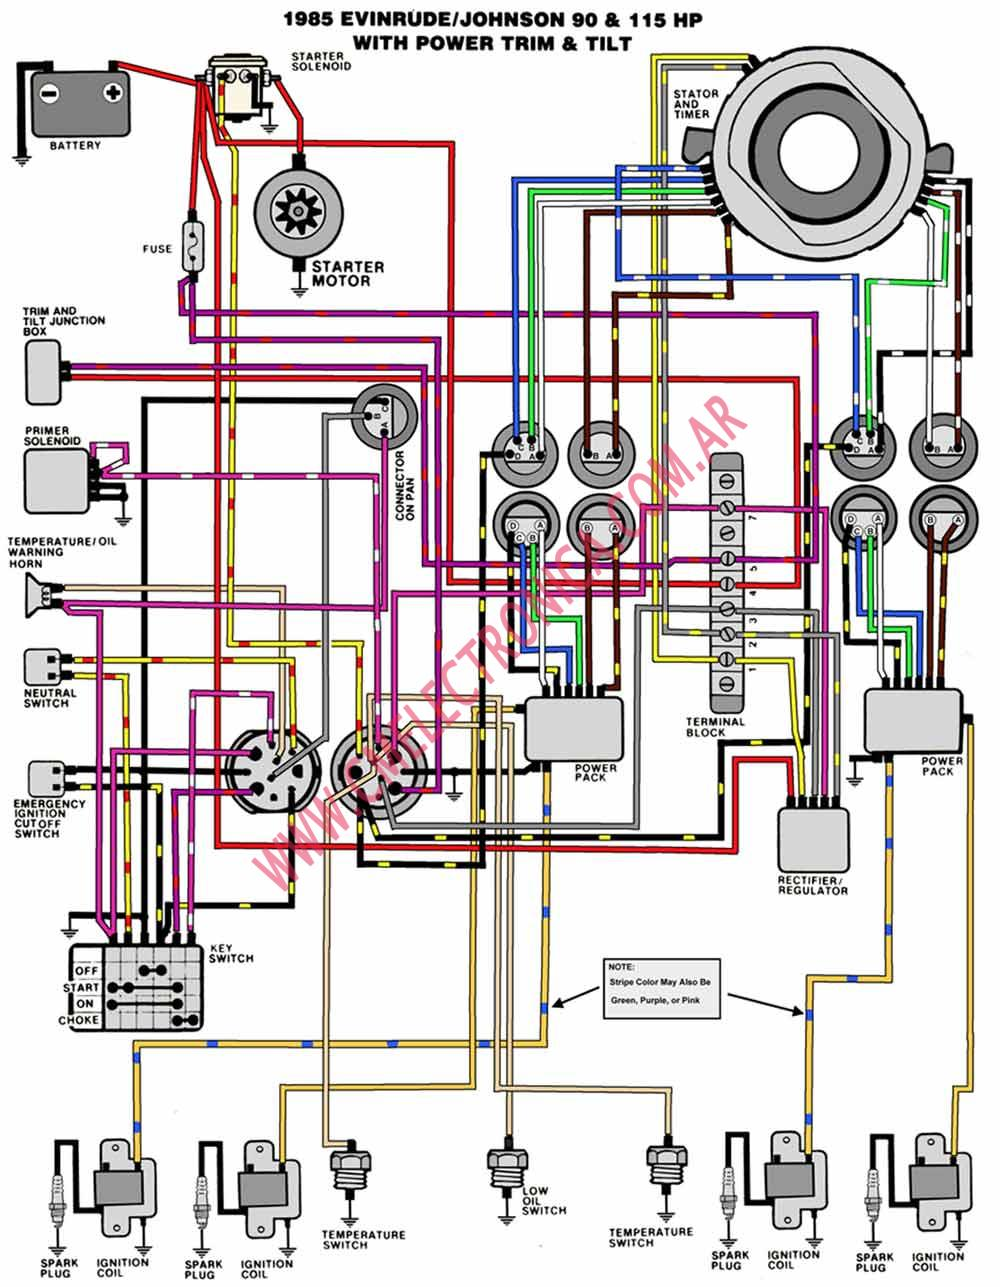 omc control box wiring diagram images omc control box diagram evinrude outboard wiring diagram get image about wiring diagram